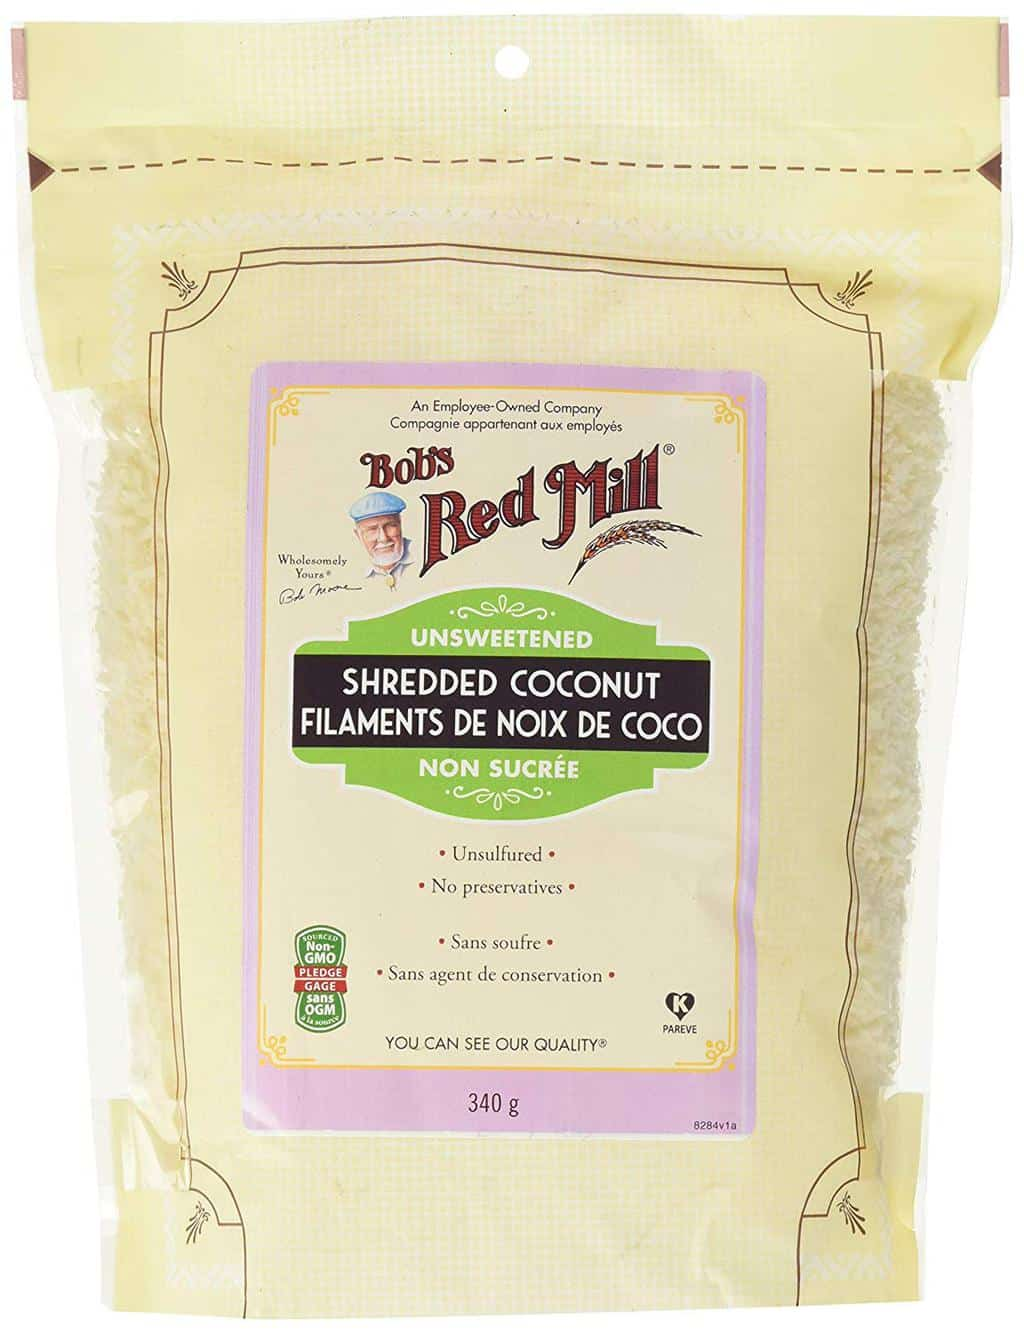 Bobs Red Mill Unsweetened Shredded Coconut, 340g